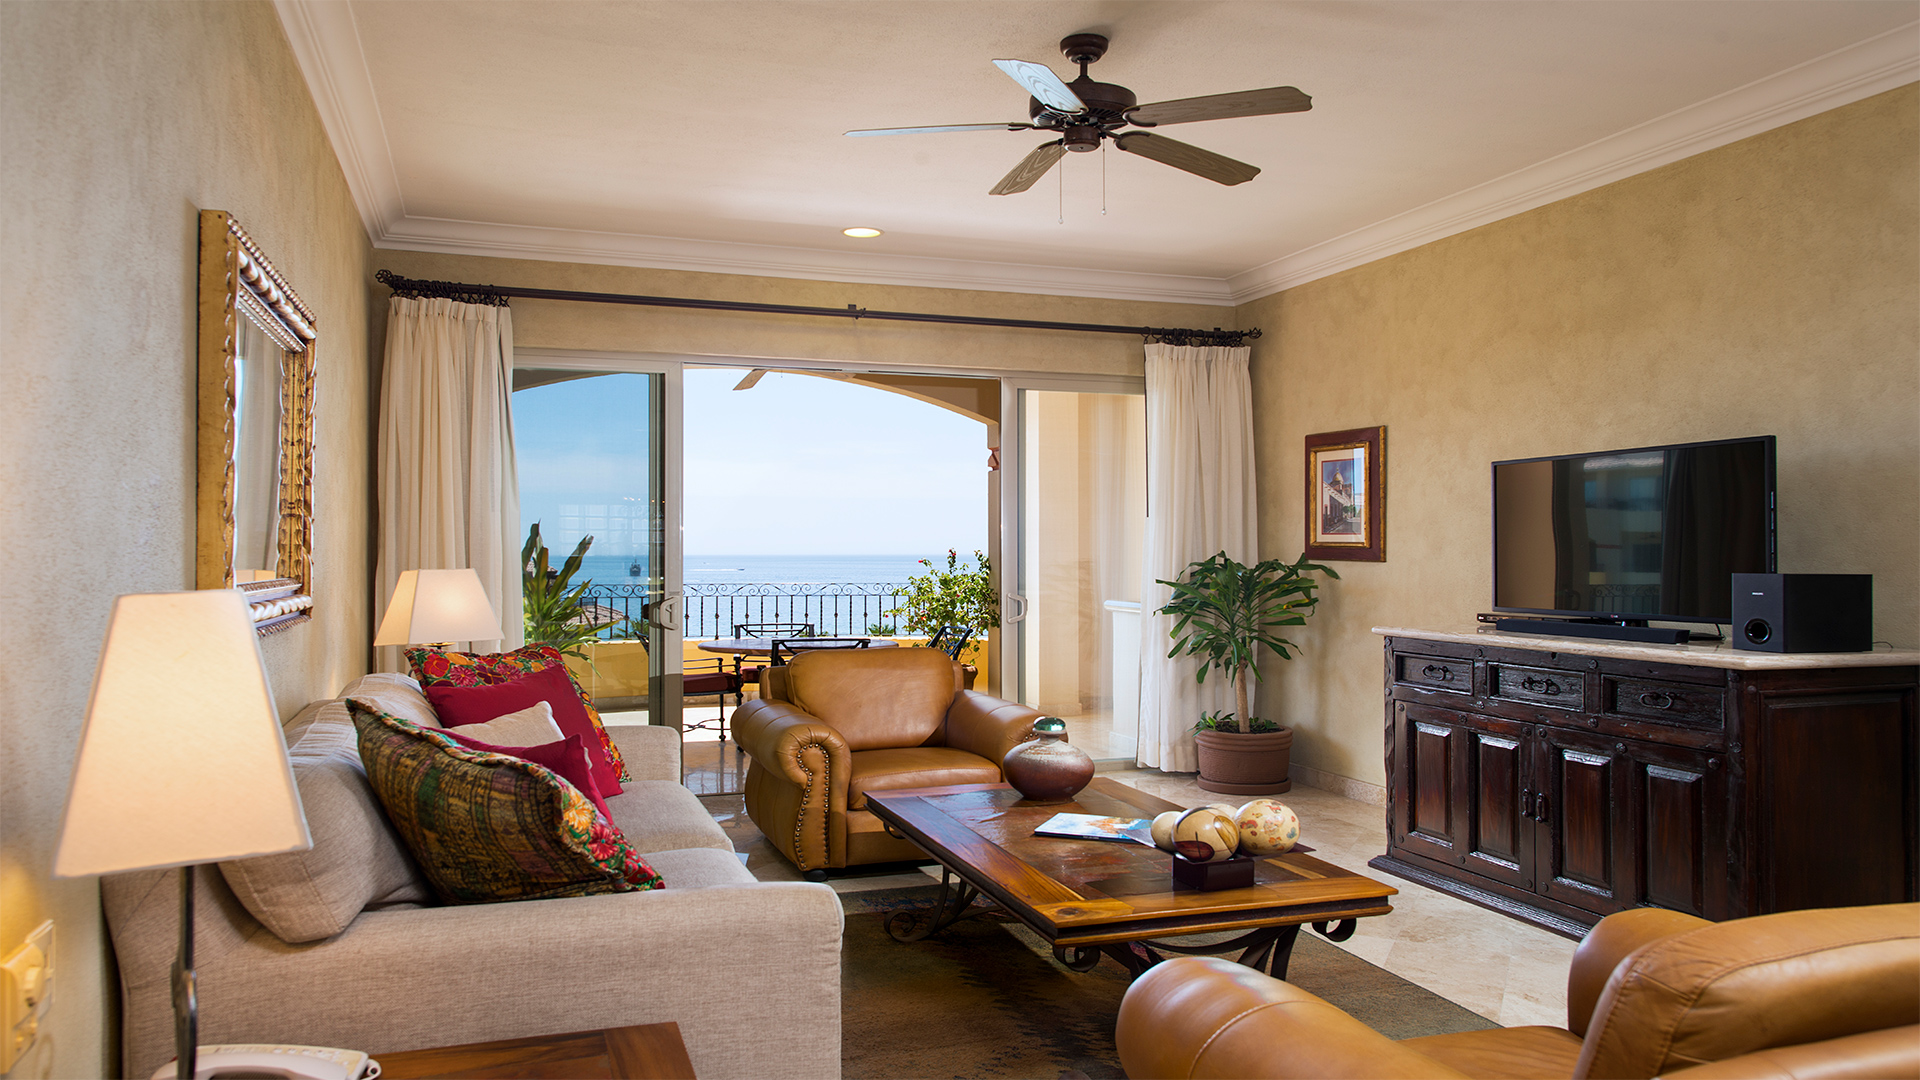 Villa la estancia los cabos one bedroom suite ocean view